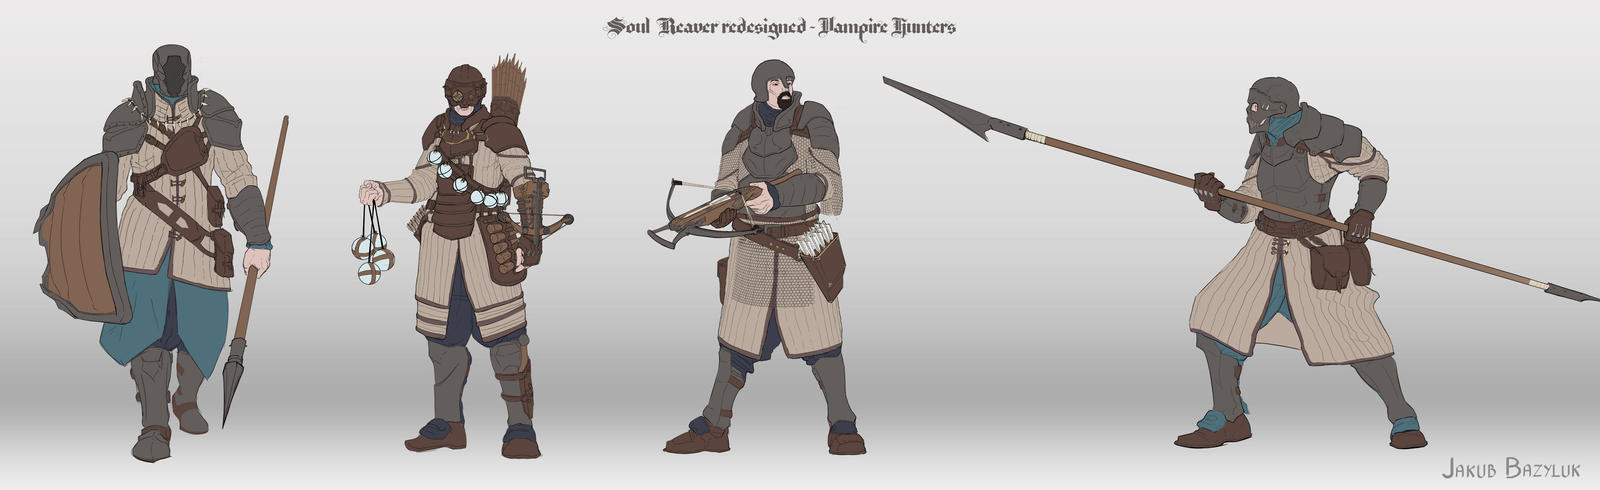 Soul Reaver redesigned - Vampire Hunters concepts